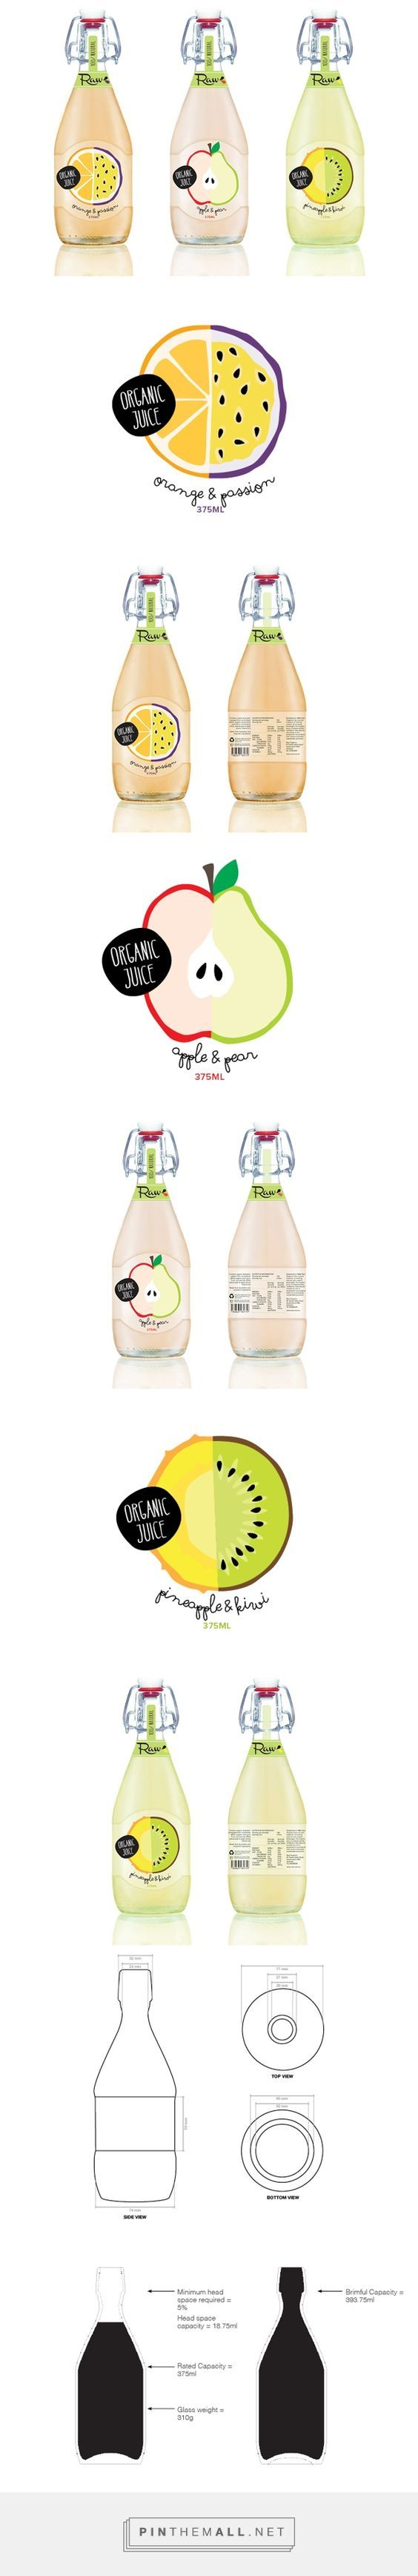 Raw Juice Packaging by Kenya Carroll on Behance | Fivestar Branding – Design and Branding Agency & Inspiration Gallery